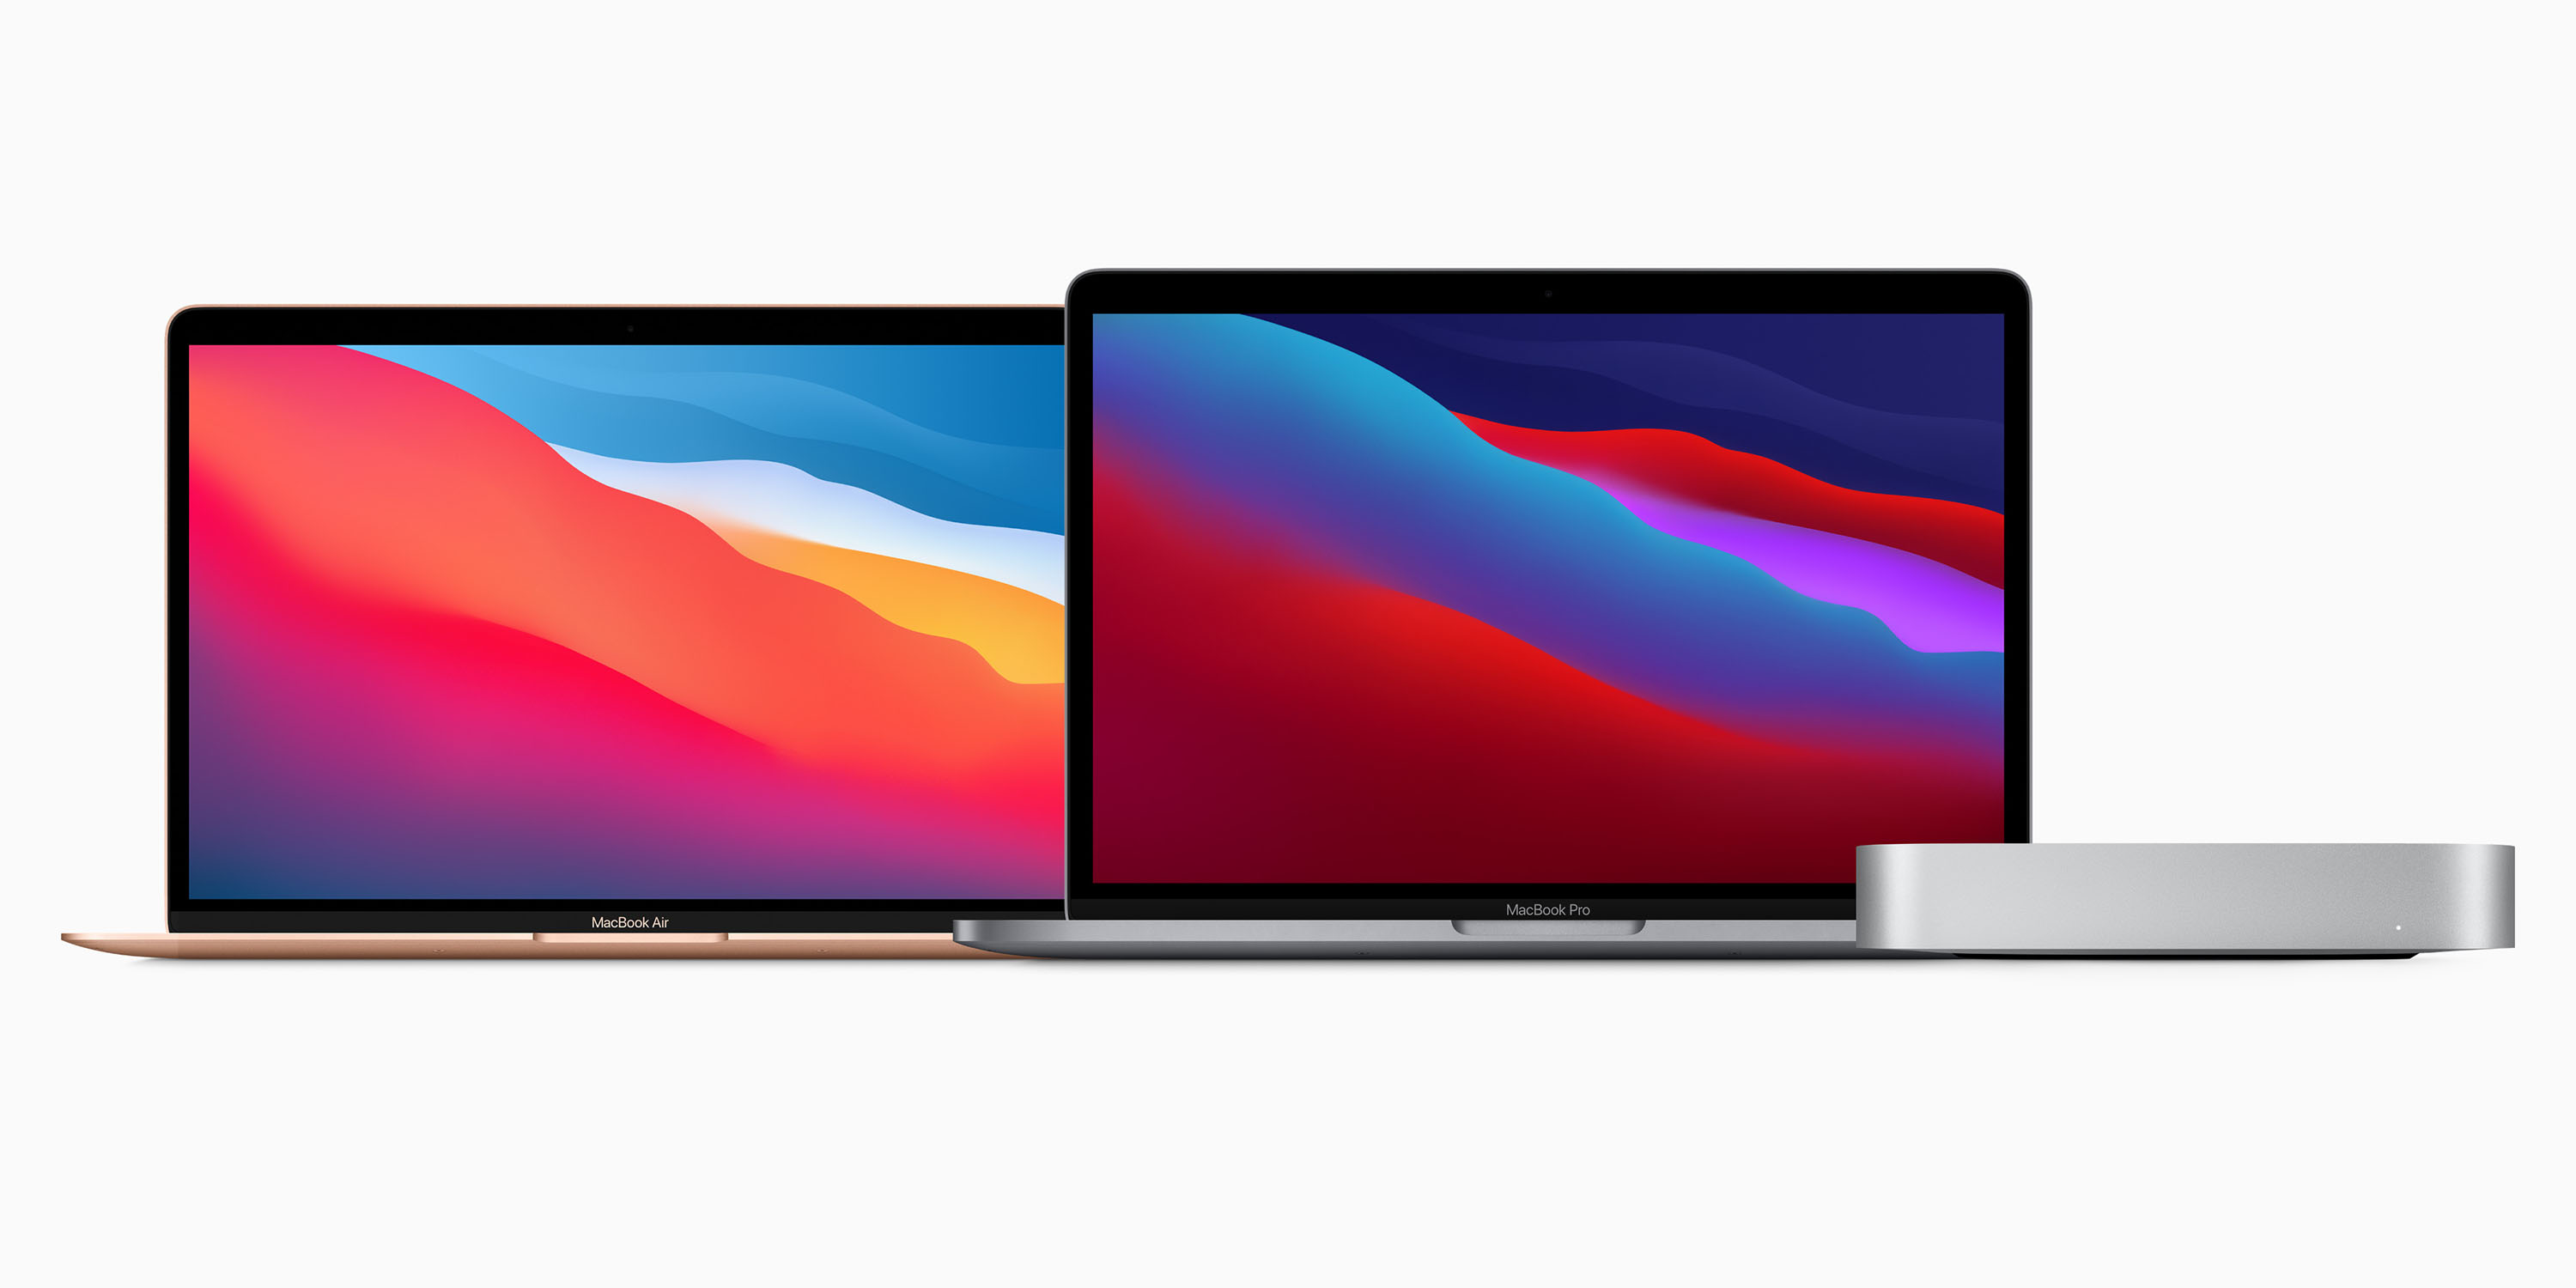 M1 Macs market share forecast to hit 7% by summer